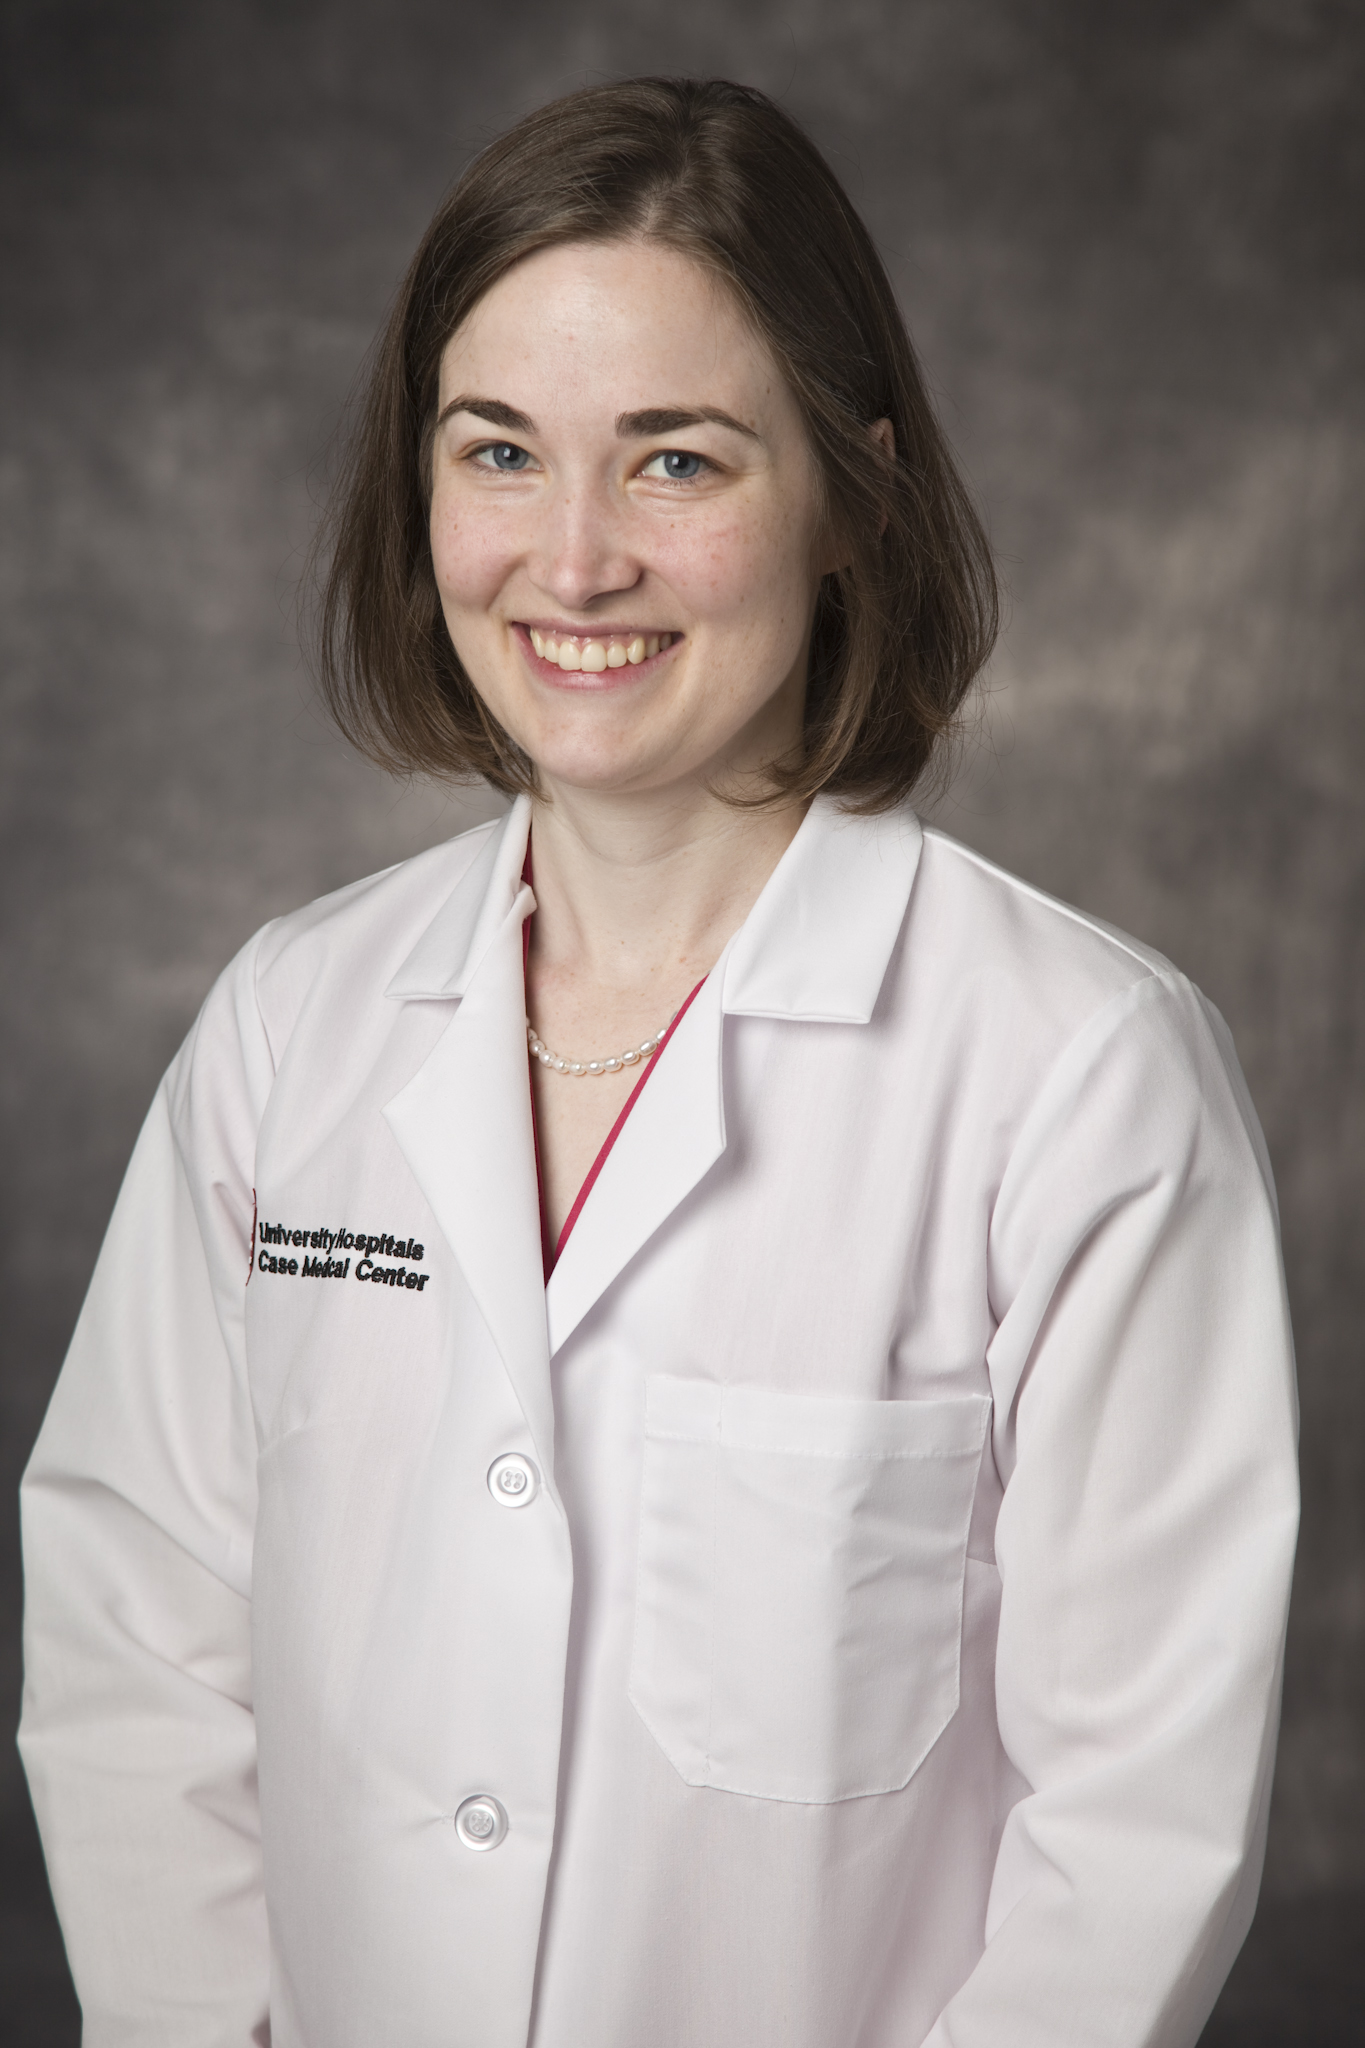 Moira Crowley, MD